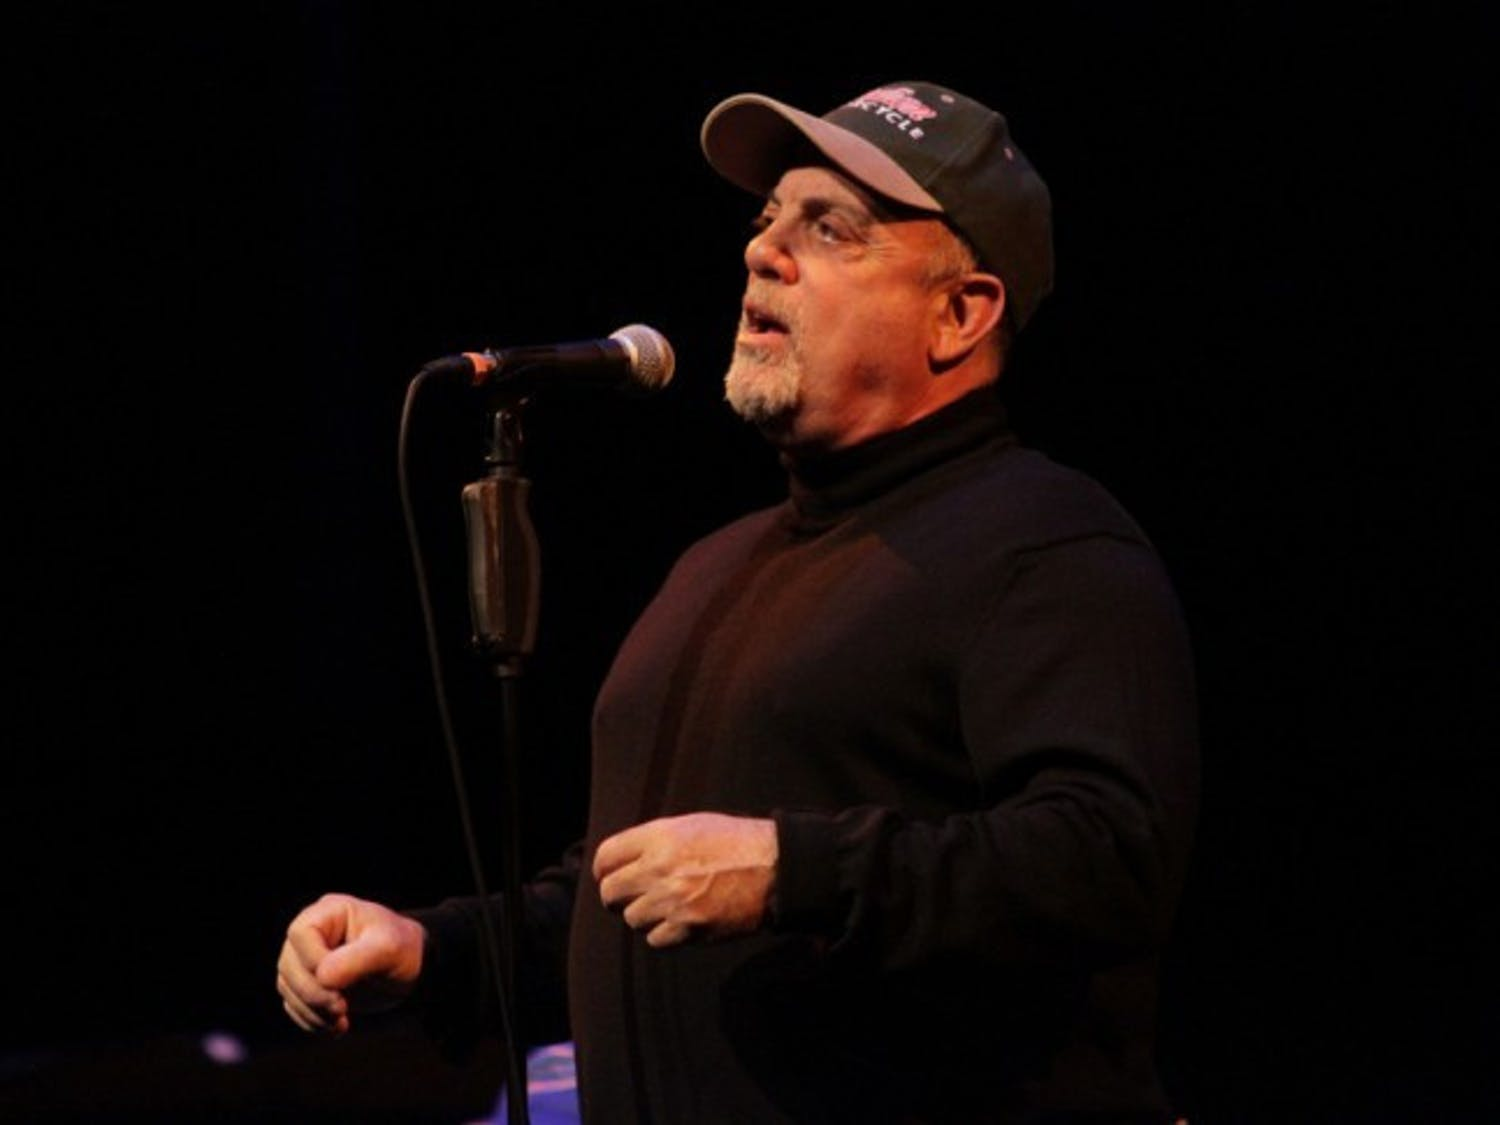 Billy Joel speaks to a packed house at the Phillips Center for the Performing Arts on Thursday night. He performed several songs and answered questions from the crowd about his career and the music business.